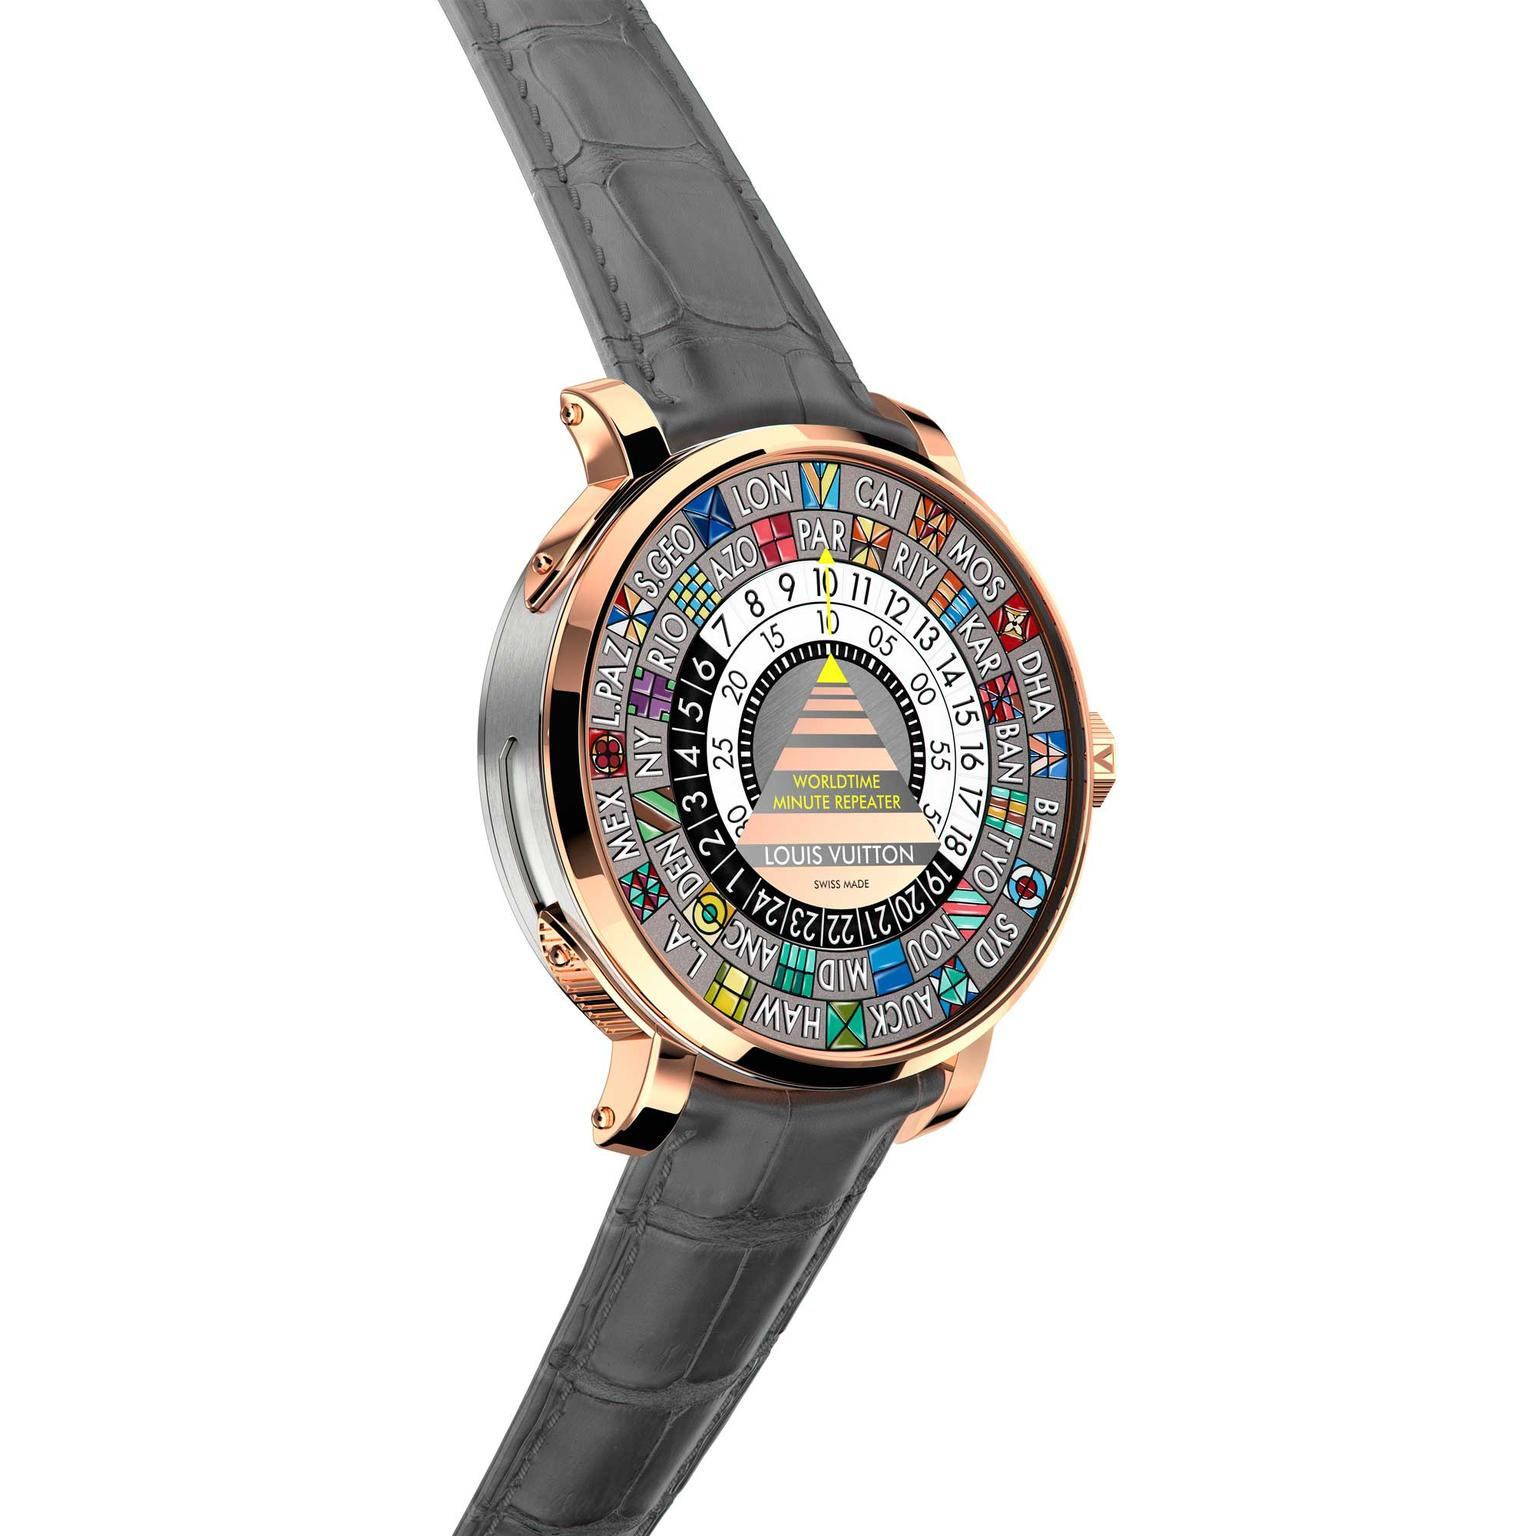 Louis Vuitton Escale Minute Repeater Worldtime